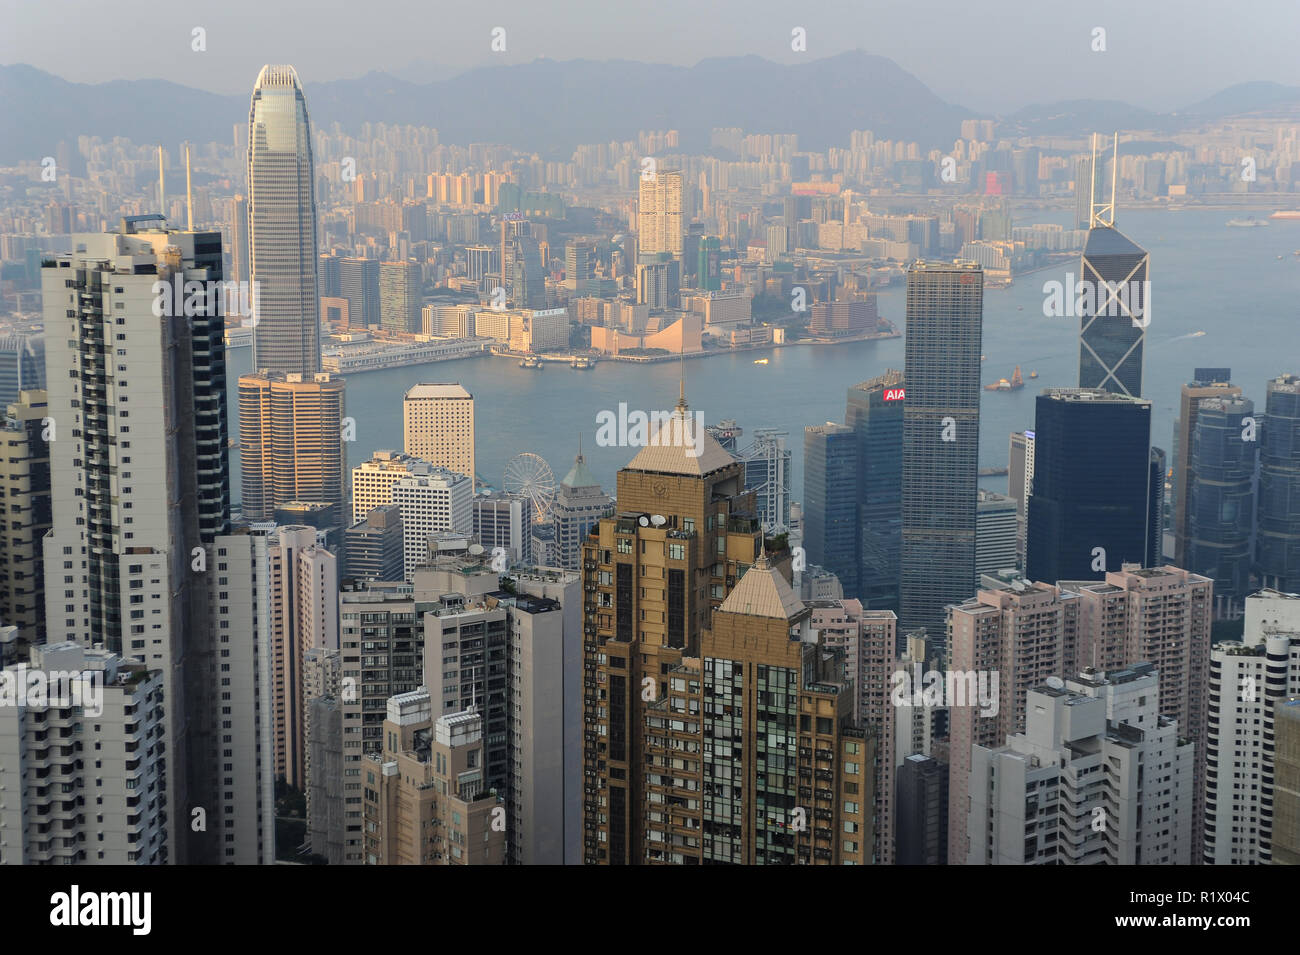 12.10.2014, Hong Kong, China, Asia - A panoramic view of Hong Kong, Victoria Harbour and Kowloon from Victoria Peak. - Stock Image